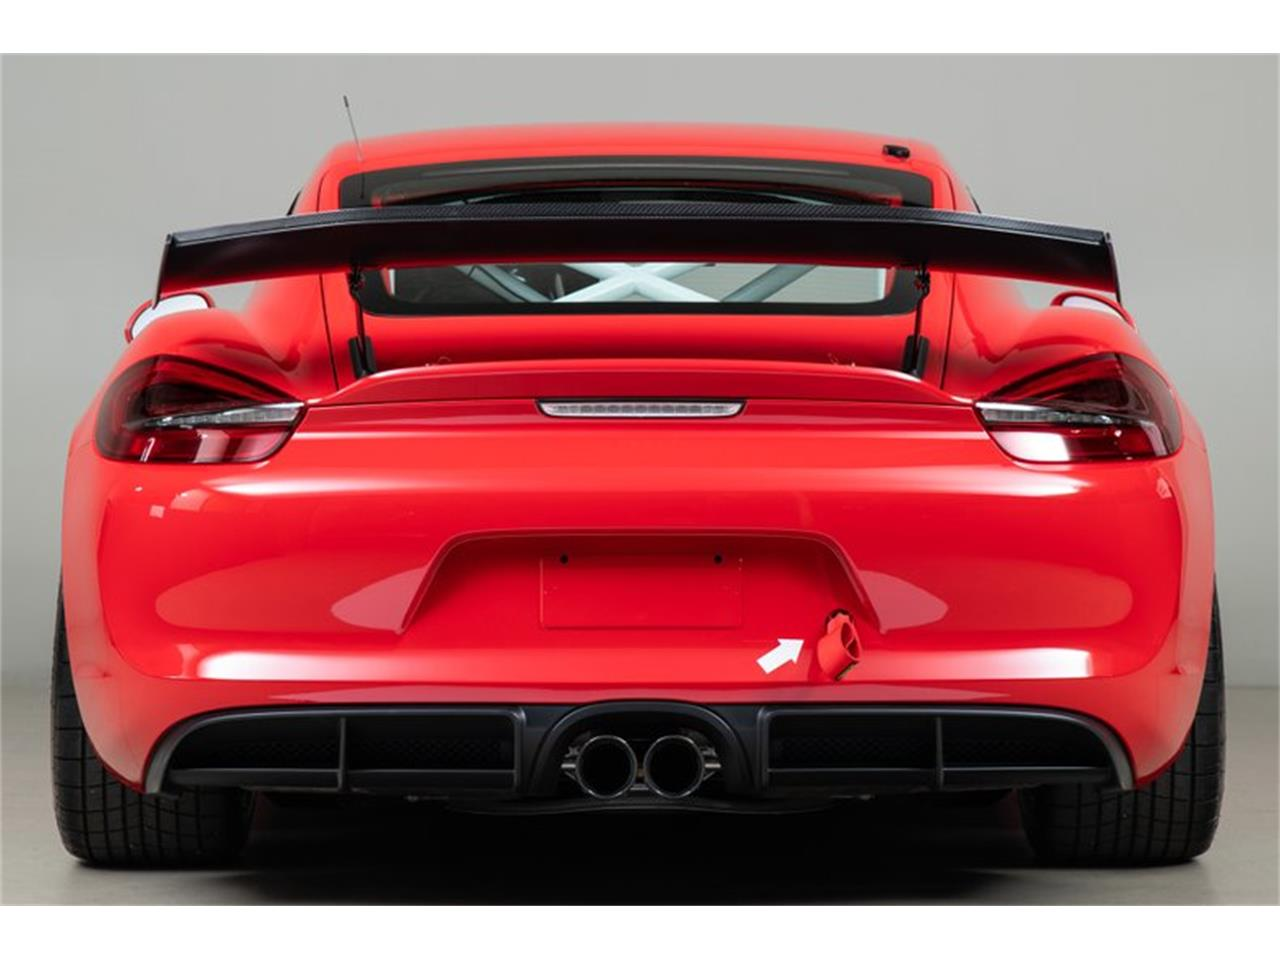 Large Picture of '16 Cayman located in Scotts Valley California Auction Vehicle Offered by Canepa - PX7K